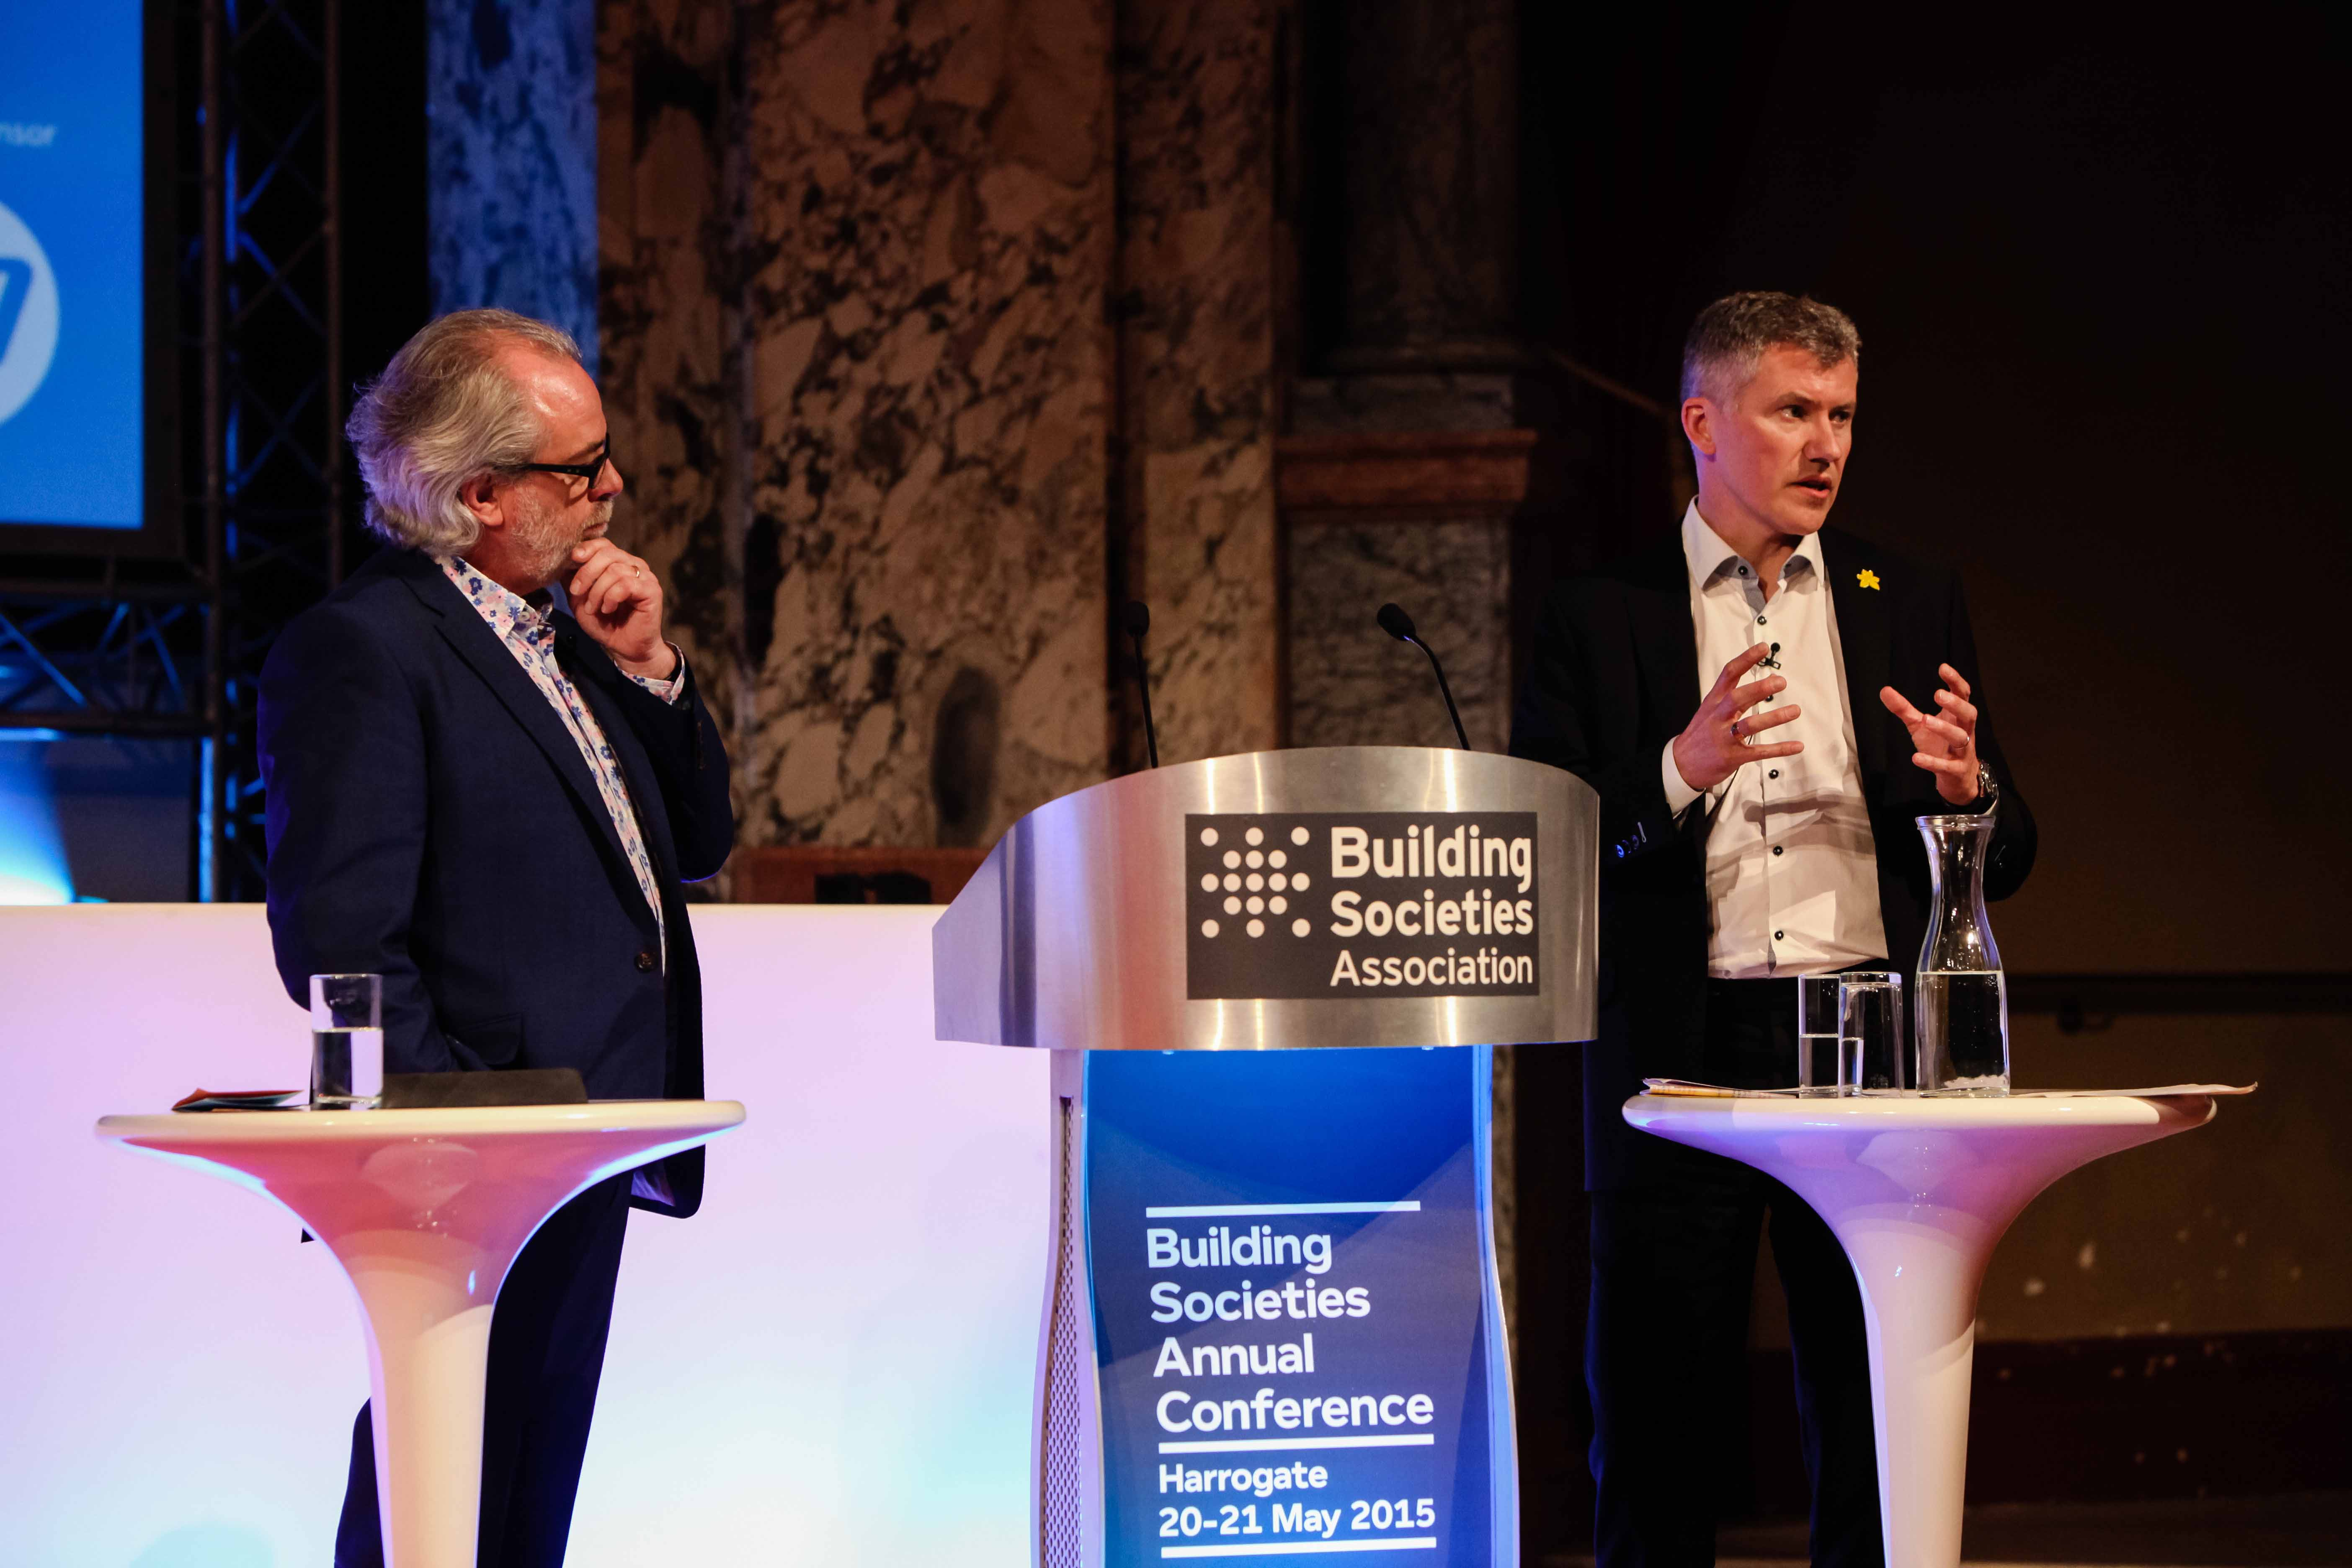 Professor Roger Steare, The Corporate Philosopher, and Chris Pilling, CEO, Yorkshire Building Society, talking about values-based leadership, culture and decision making - watch the video